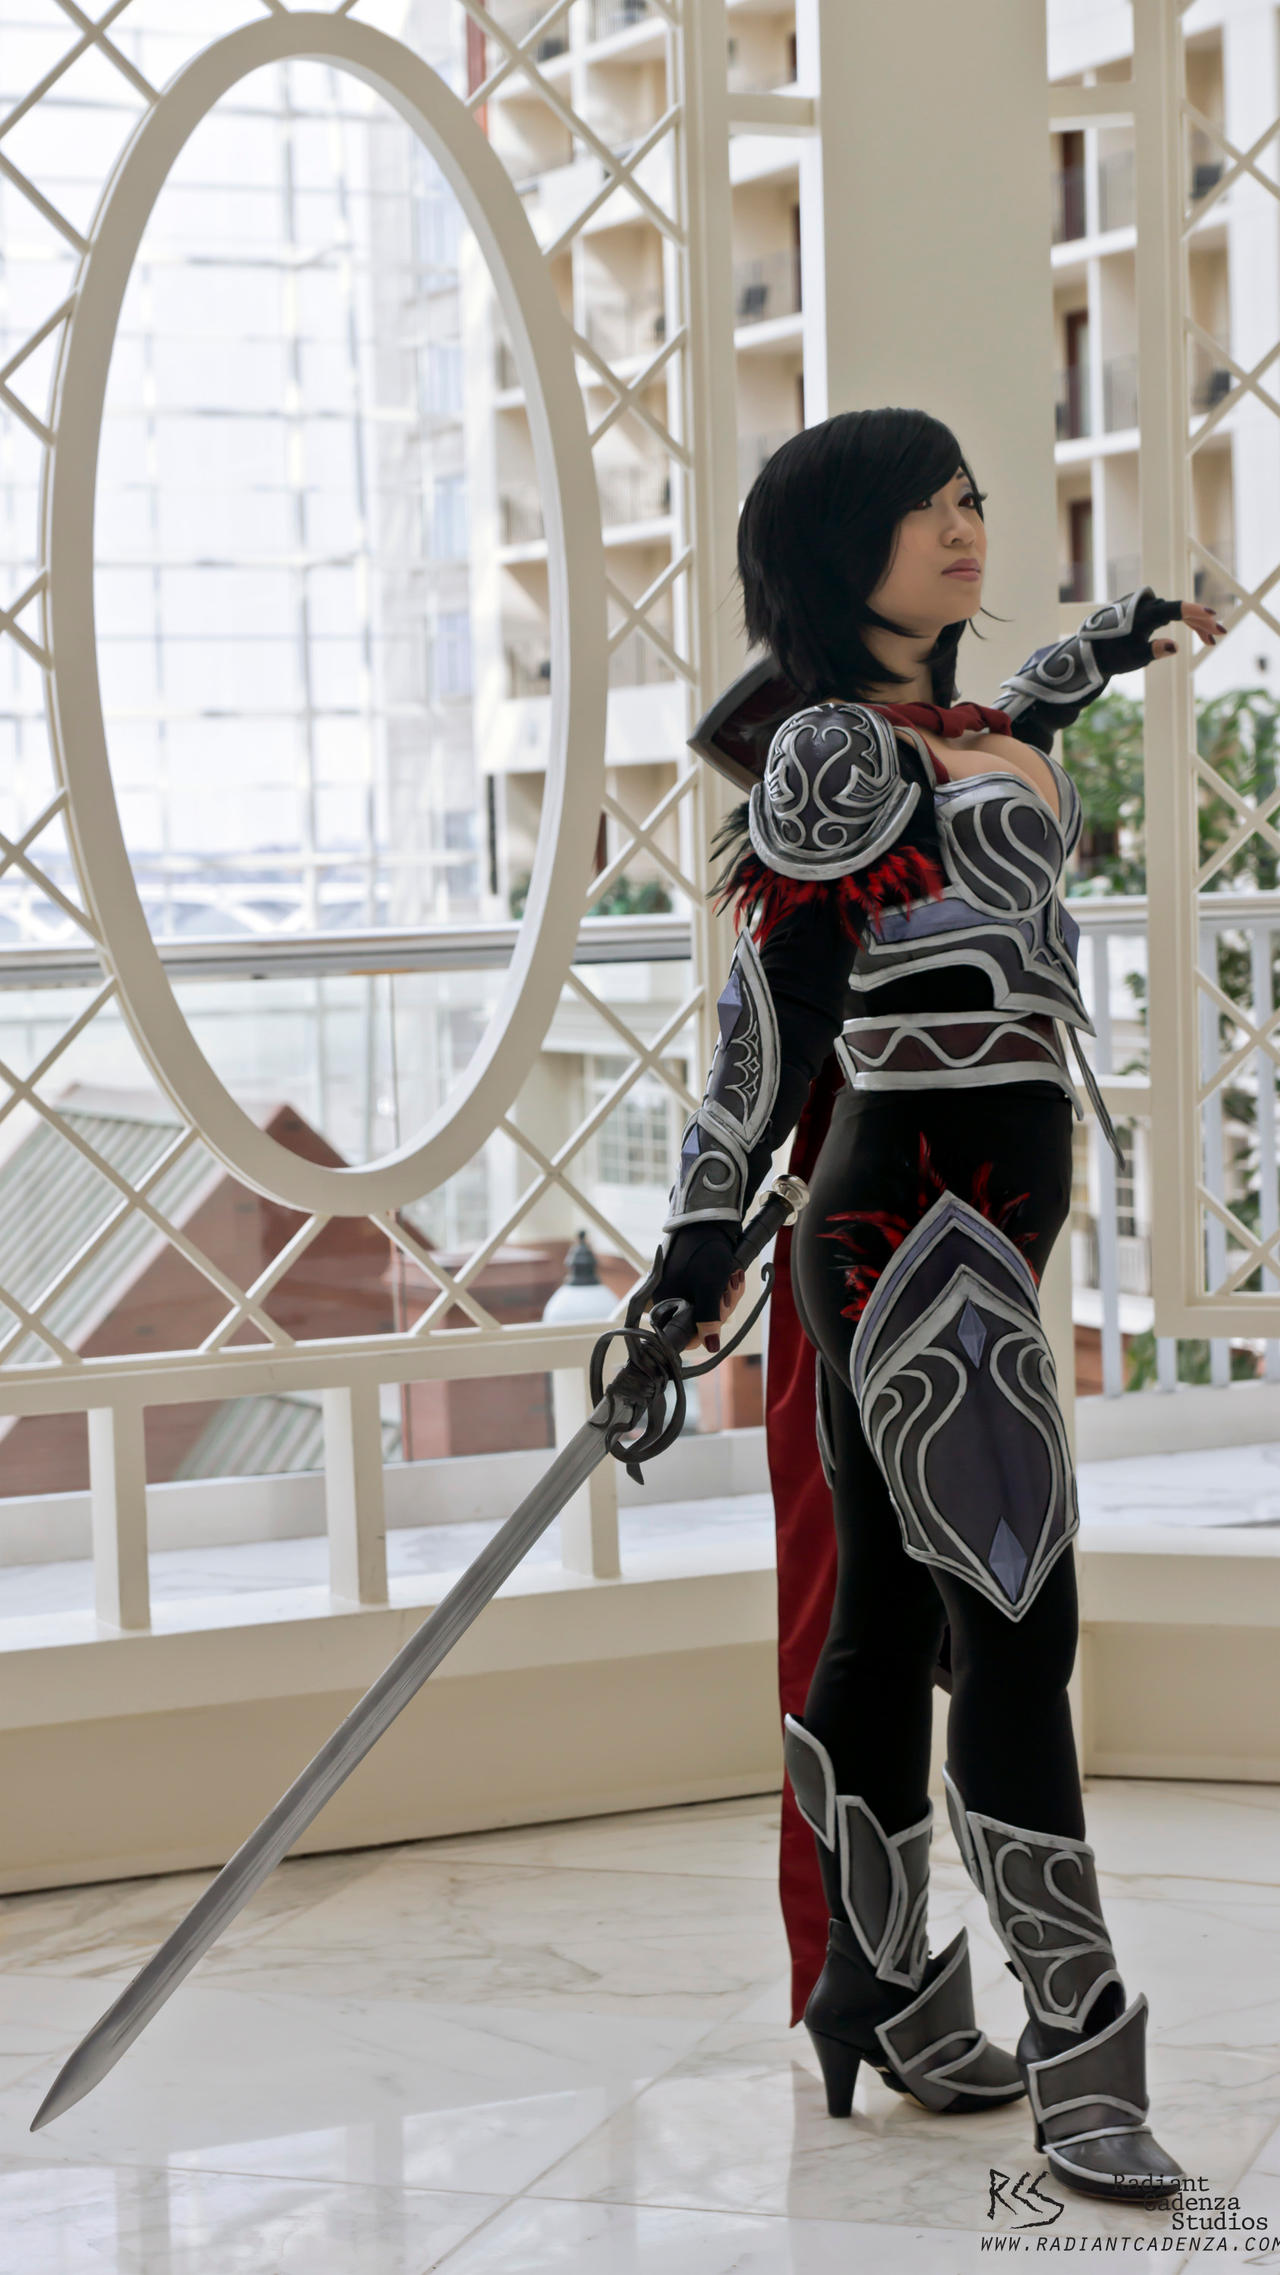 The Duelist by Radiant-Cadenza